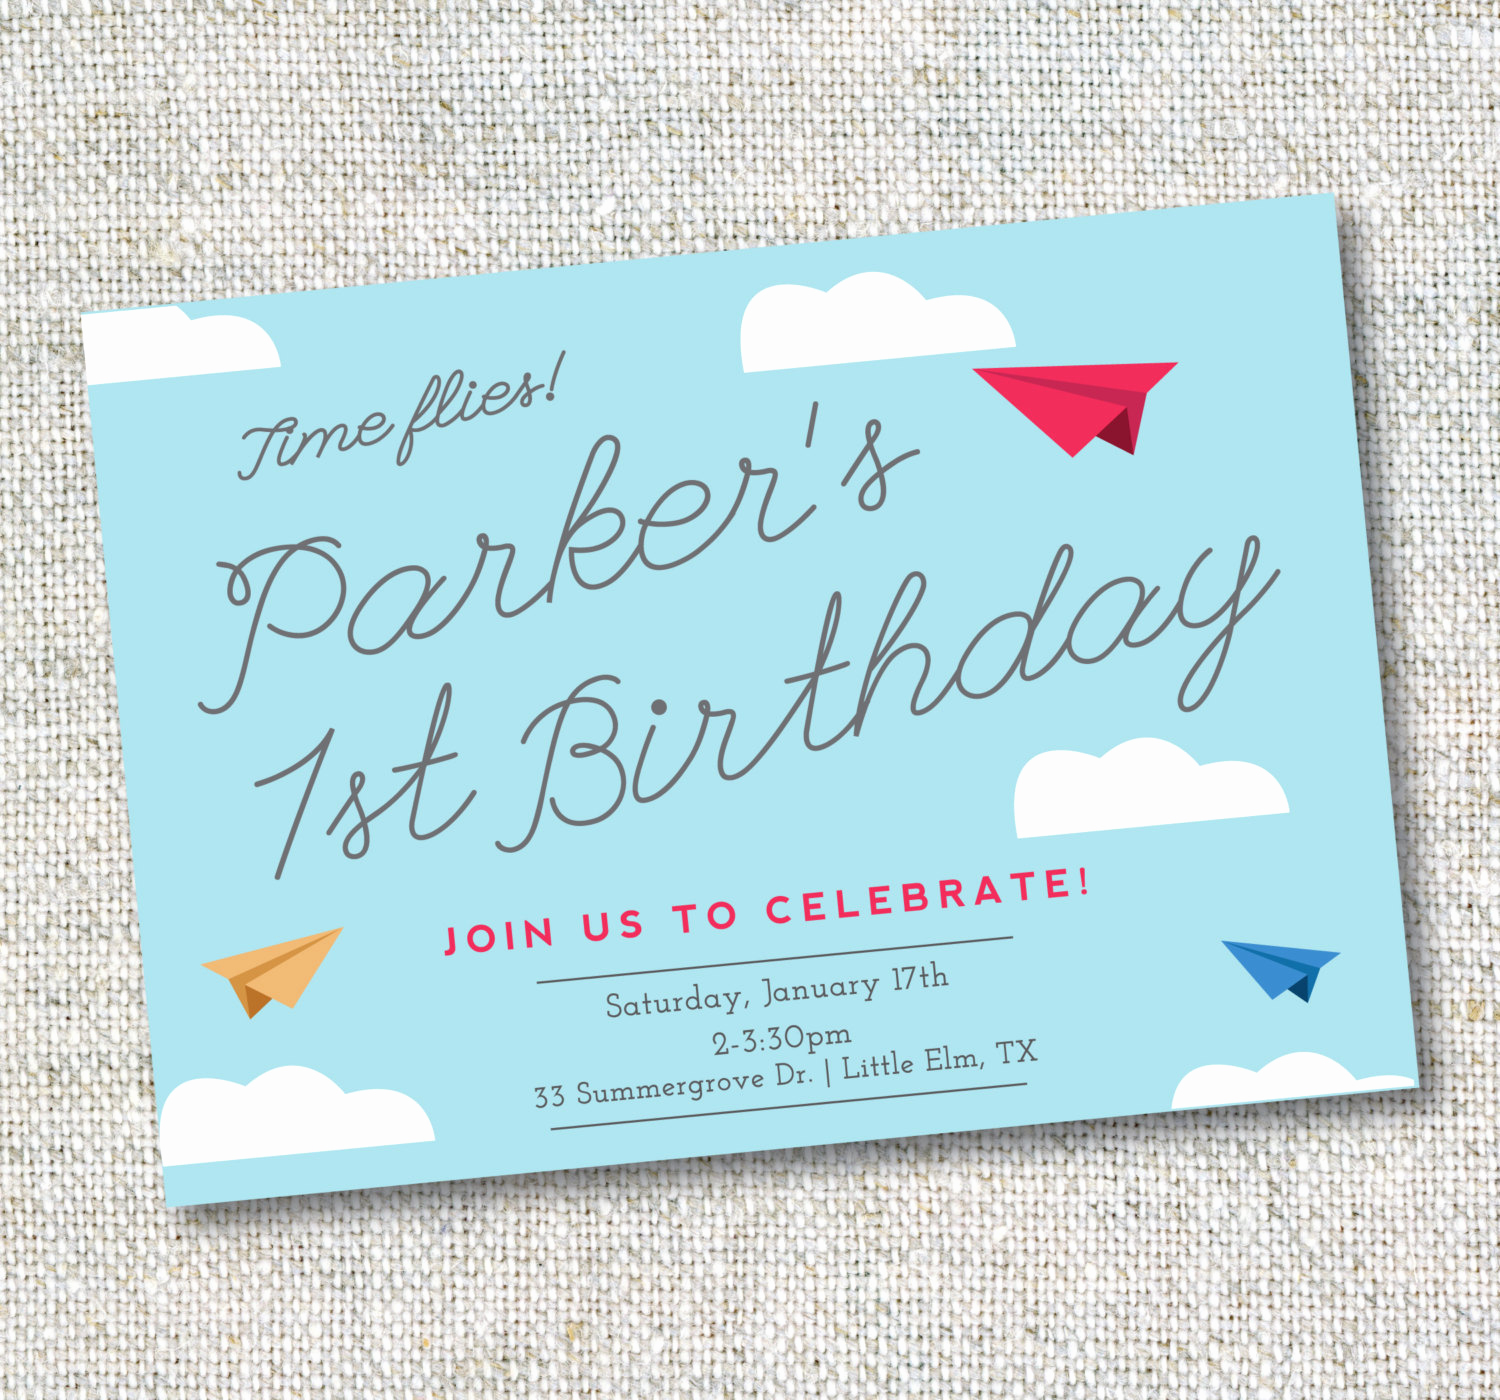 Paper Airplane Invitation Template Unique Paper Airplane Invitation Birthday Airplane theme Digital